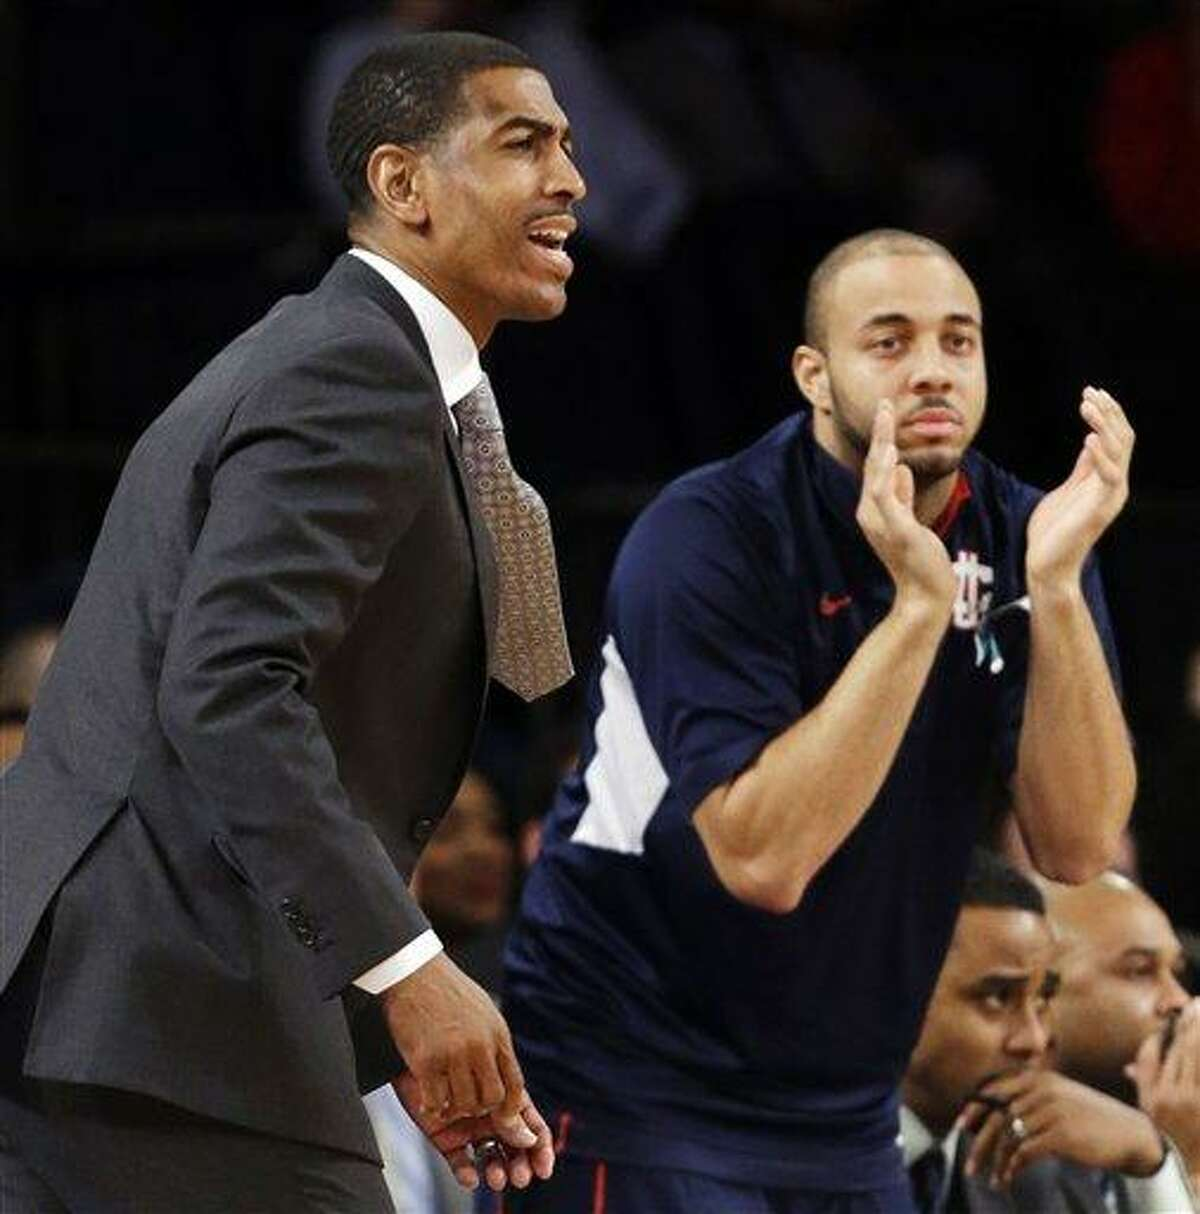 Connecticut head coach Kevin Ollie, left, reacts in the first half of their NCAA college basketball game against St. John's at Madison Square Garden in New York, Wednesday, Feb. 6, 2013. St. John's won 71-65. (AP Photo/Kathy Willens)